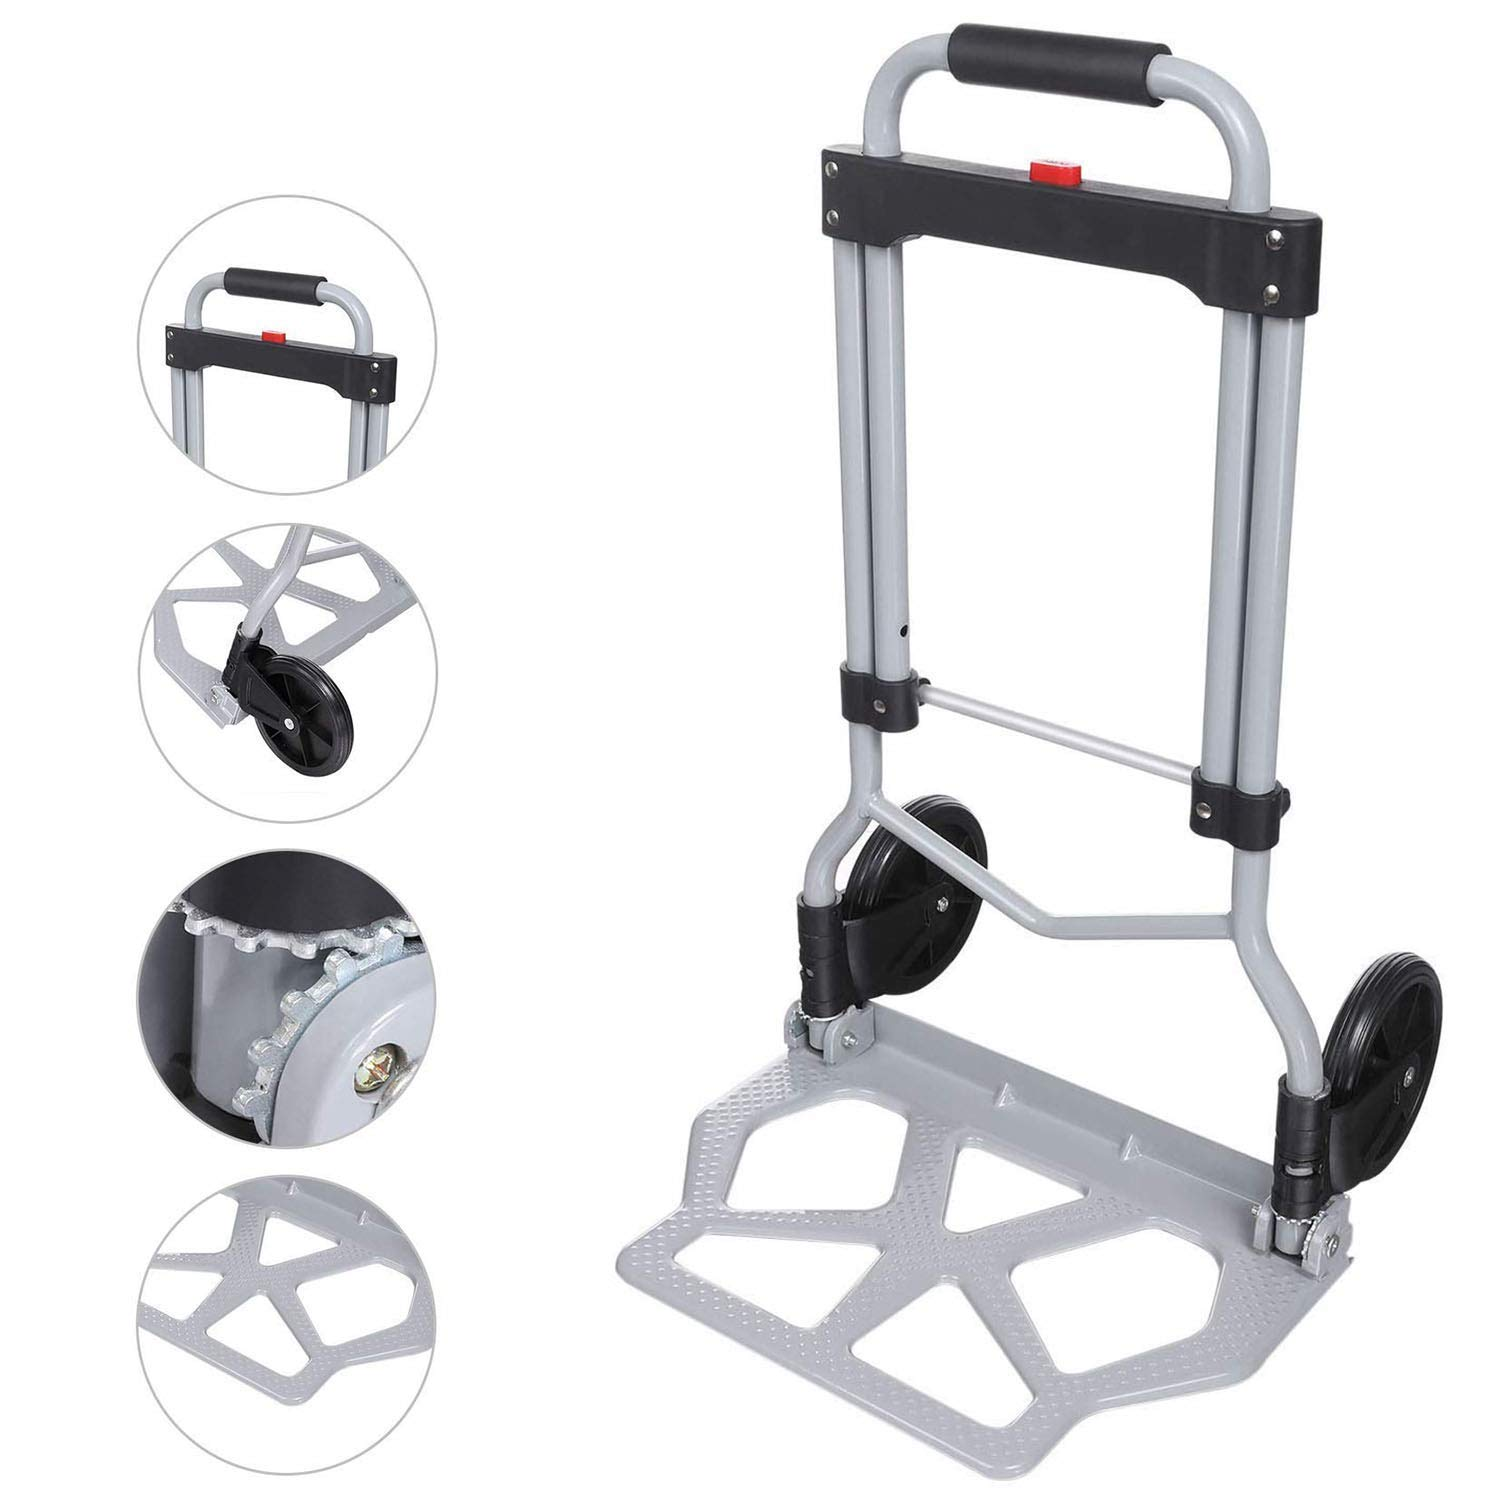 Folding Hand Truck and Dolly, 220lbs Portable Heavy-Duty Luggage Trolley Cart with Telescoping Handle and 2 Wheels for Travel, Shopping Or Industrial Black